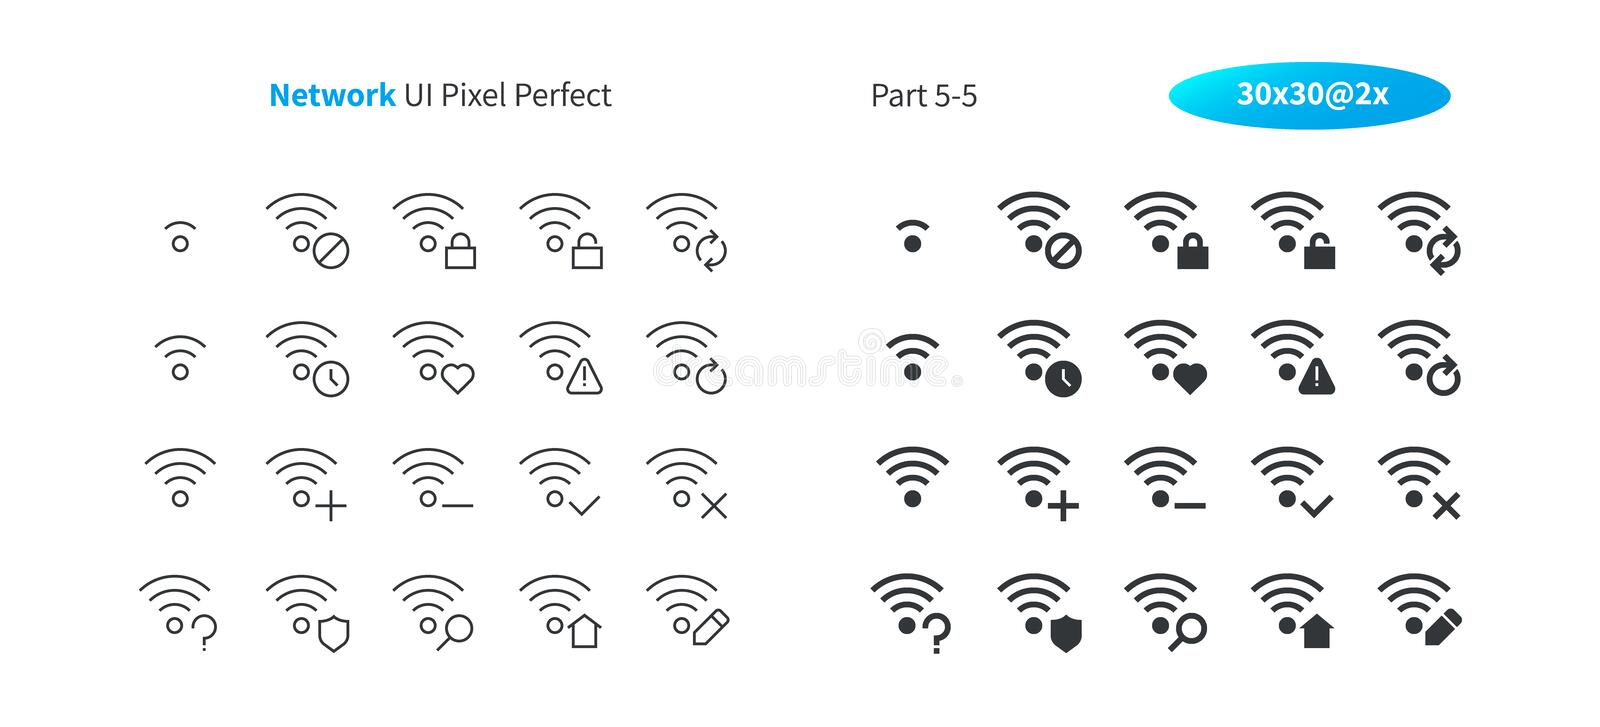 Network UI Pixel Perfect Well-crafted Vector Thin Line And Solid Icons 30 2x Grid for Web Graphics and Apps. Simple royalty free illustration